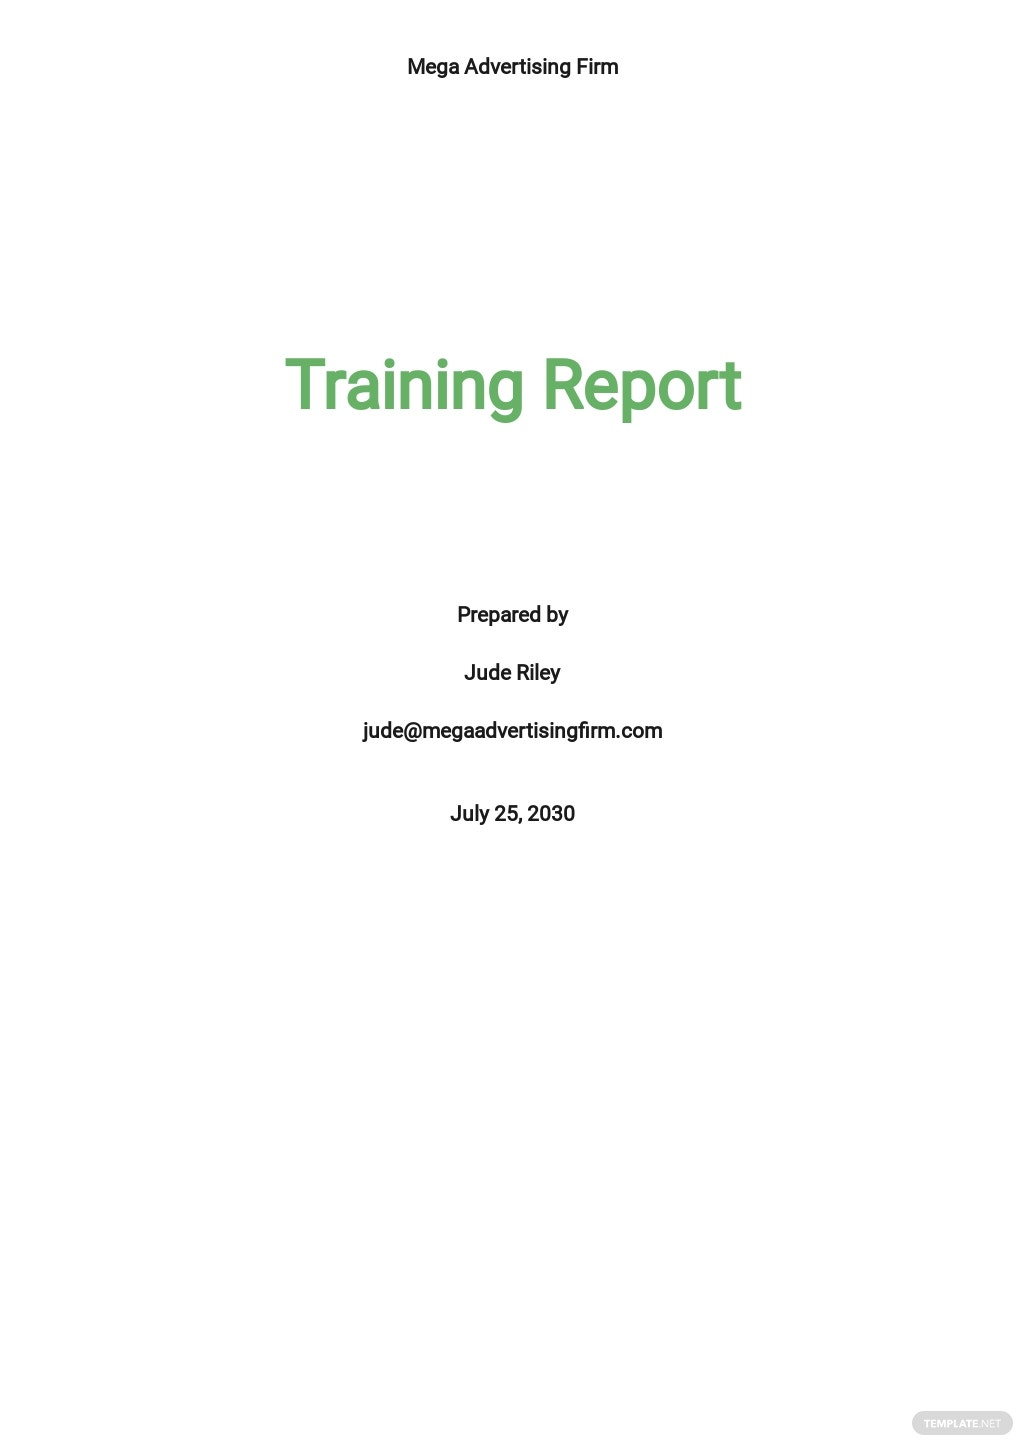 Sample Training Report Template